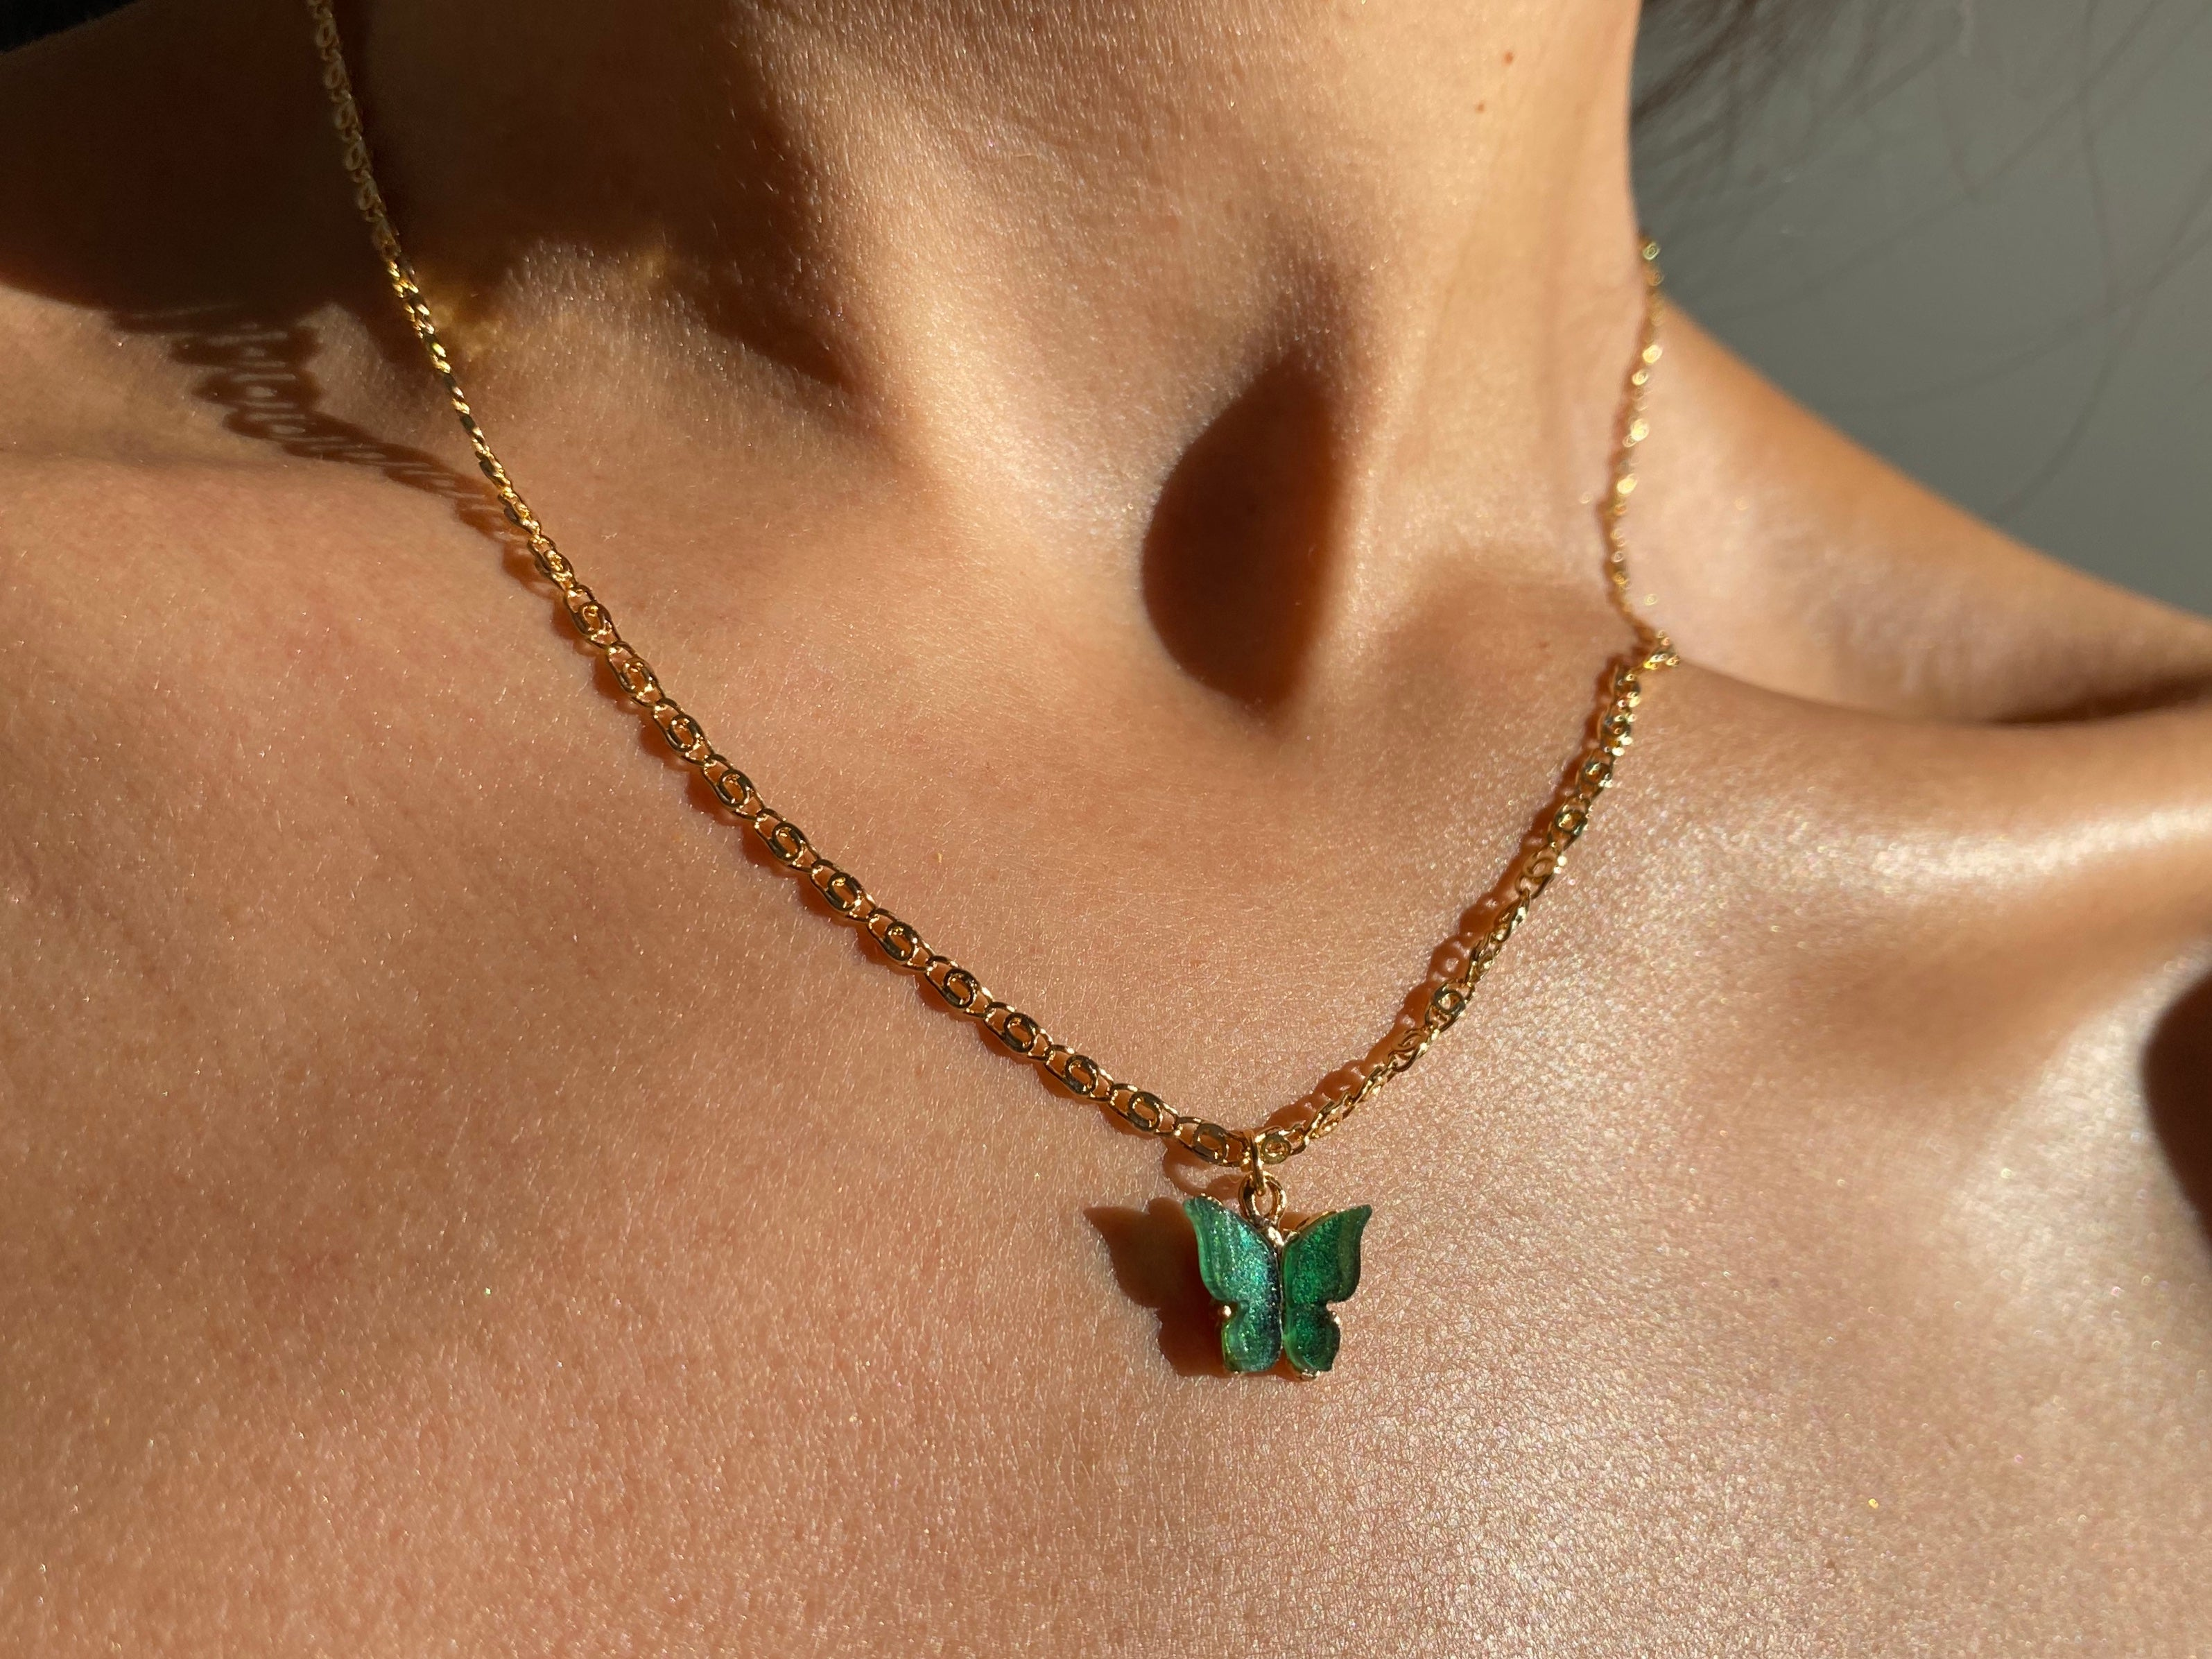 Green butterfly, gold dainty jewelry, gold jewelry, butterfly necklace, gold tiny jewelry, kylie necklace, kylie butterfly necklace, cute dainty necklace